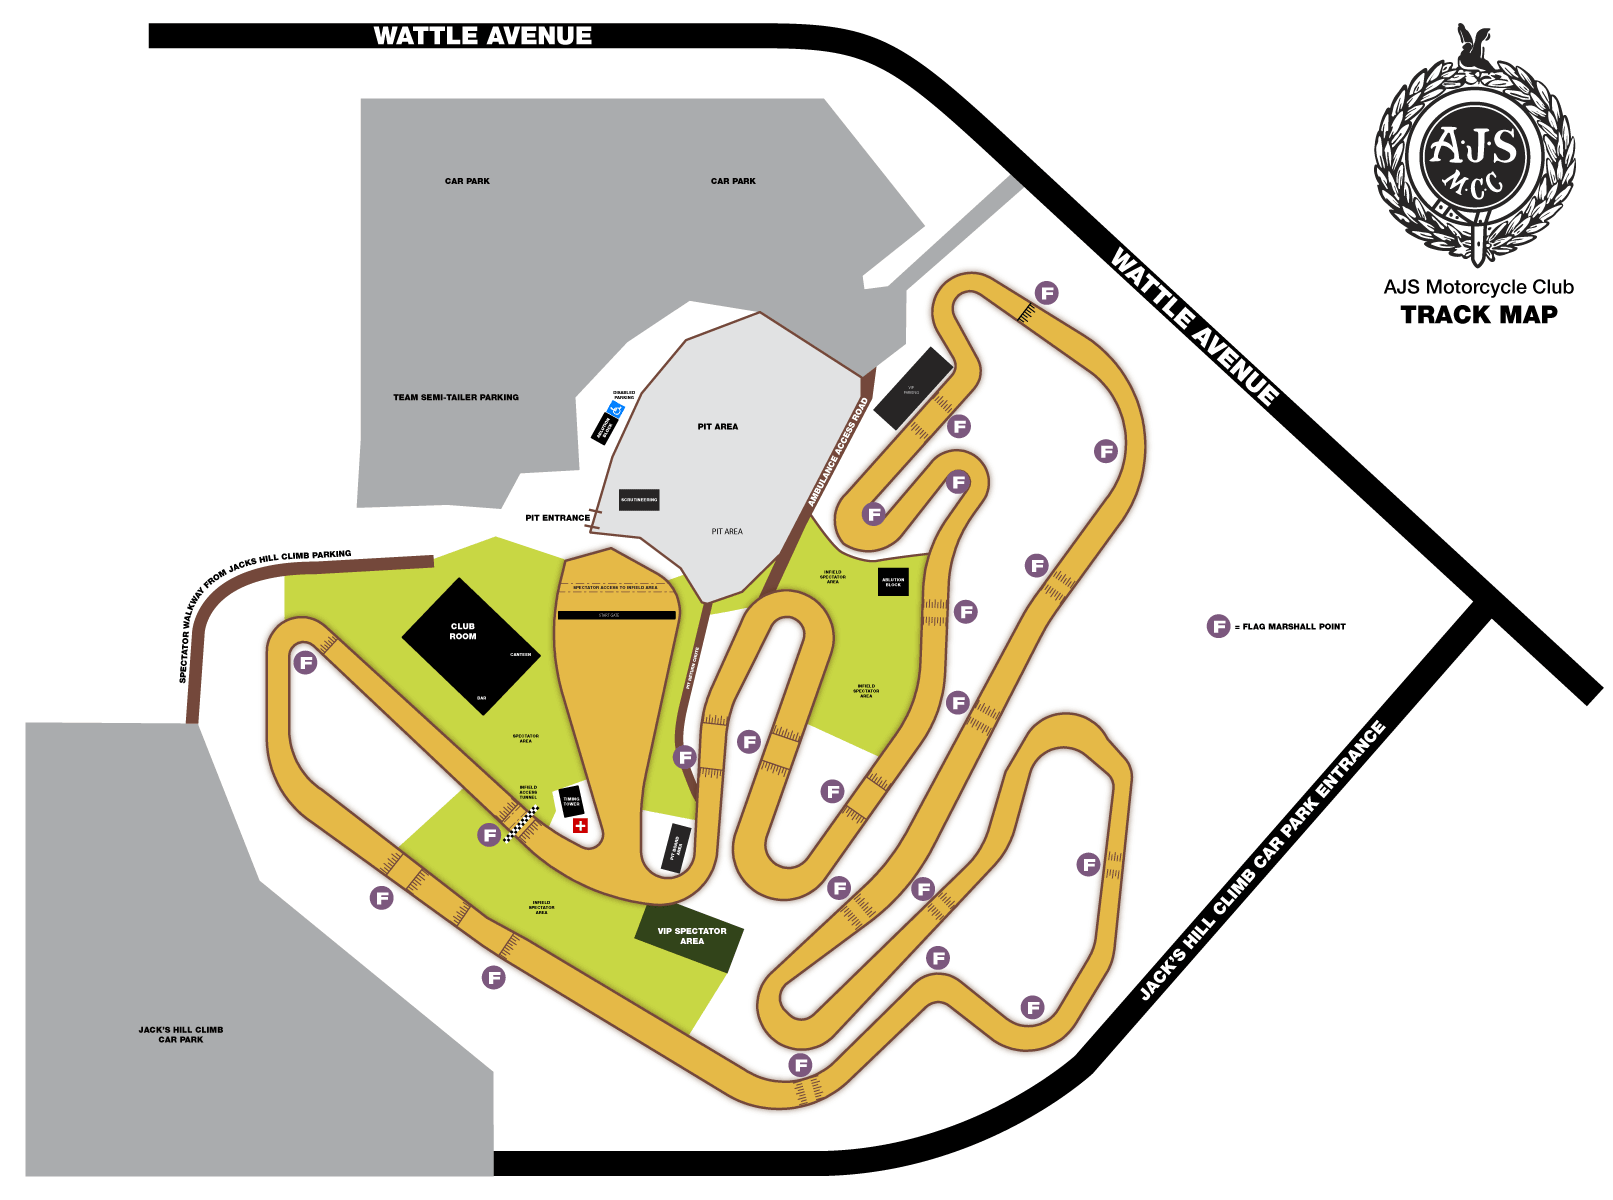 AJS Track Map